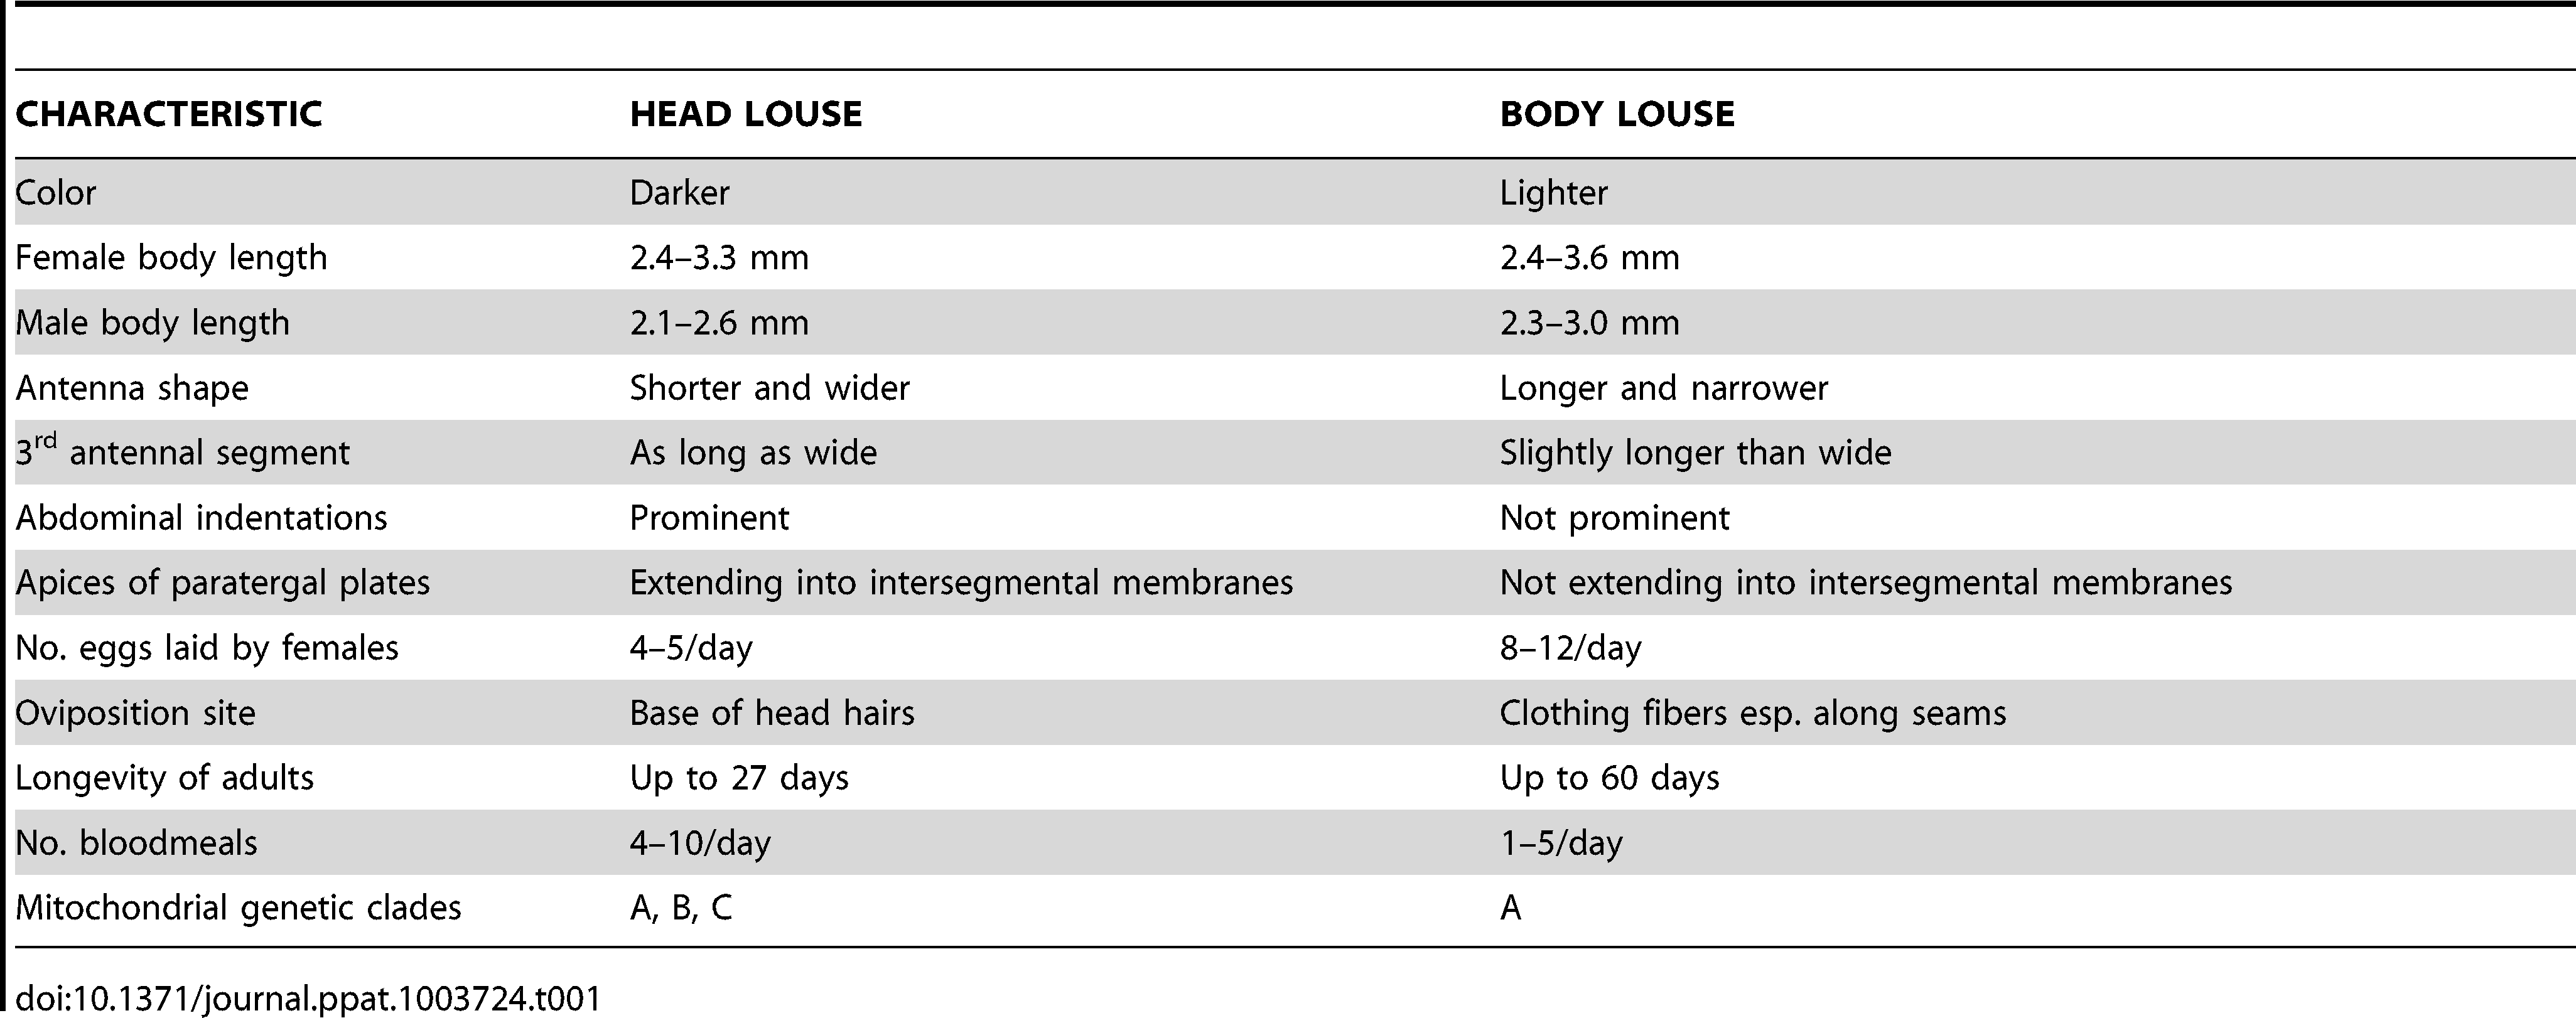 Selected morphological and biological differences between human head and body lice.